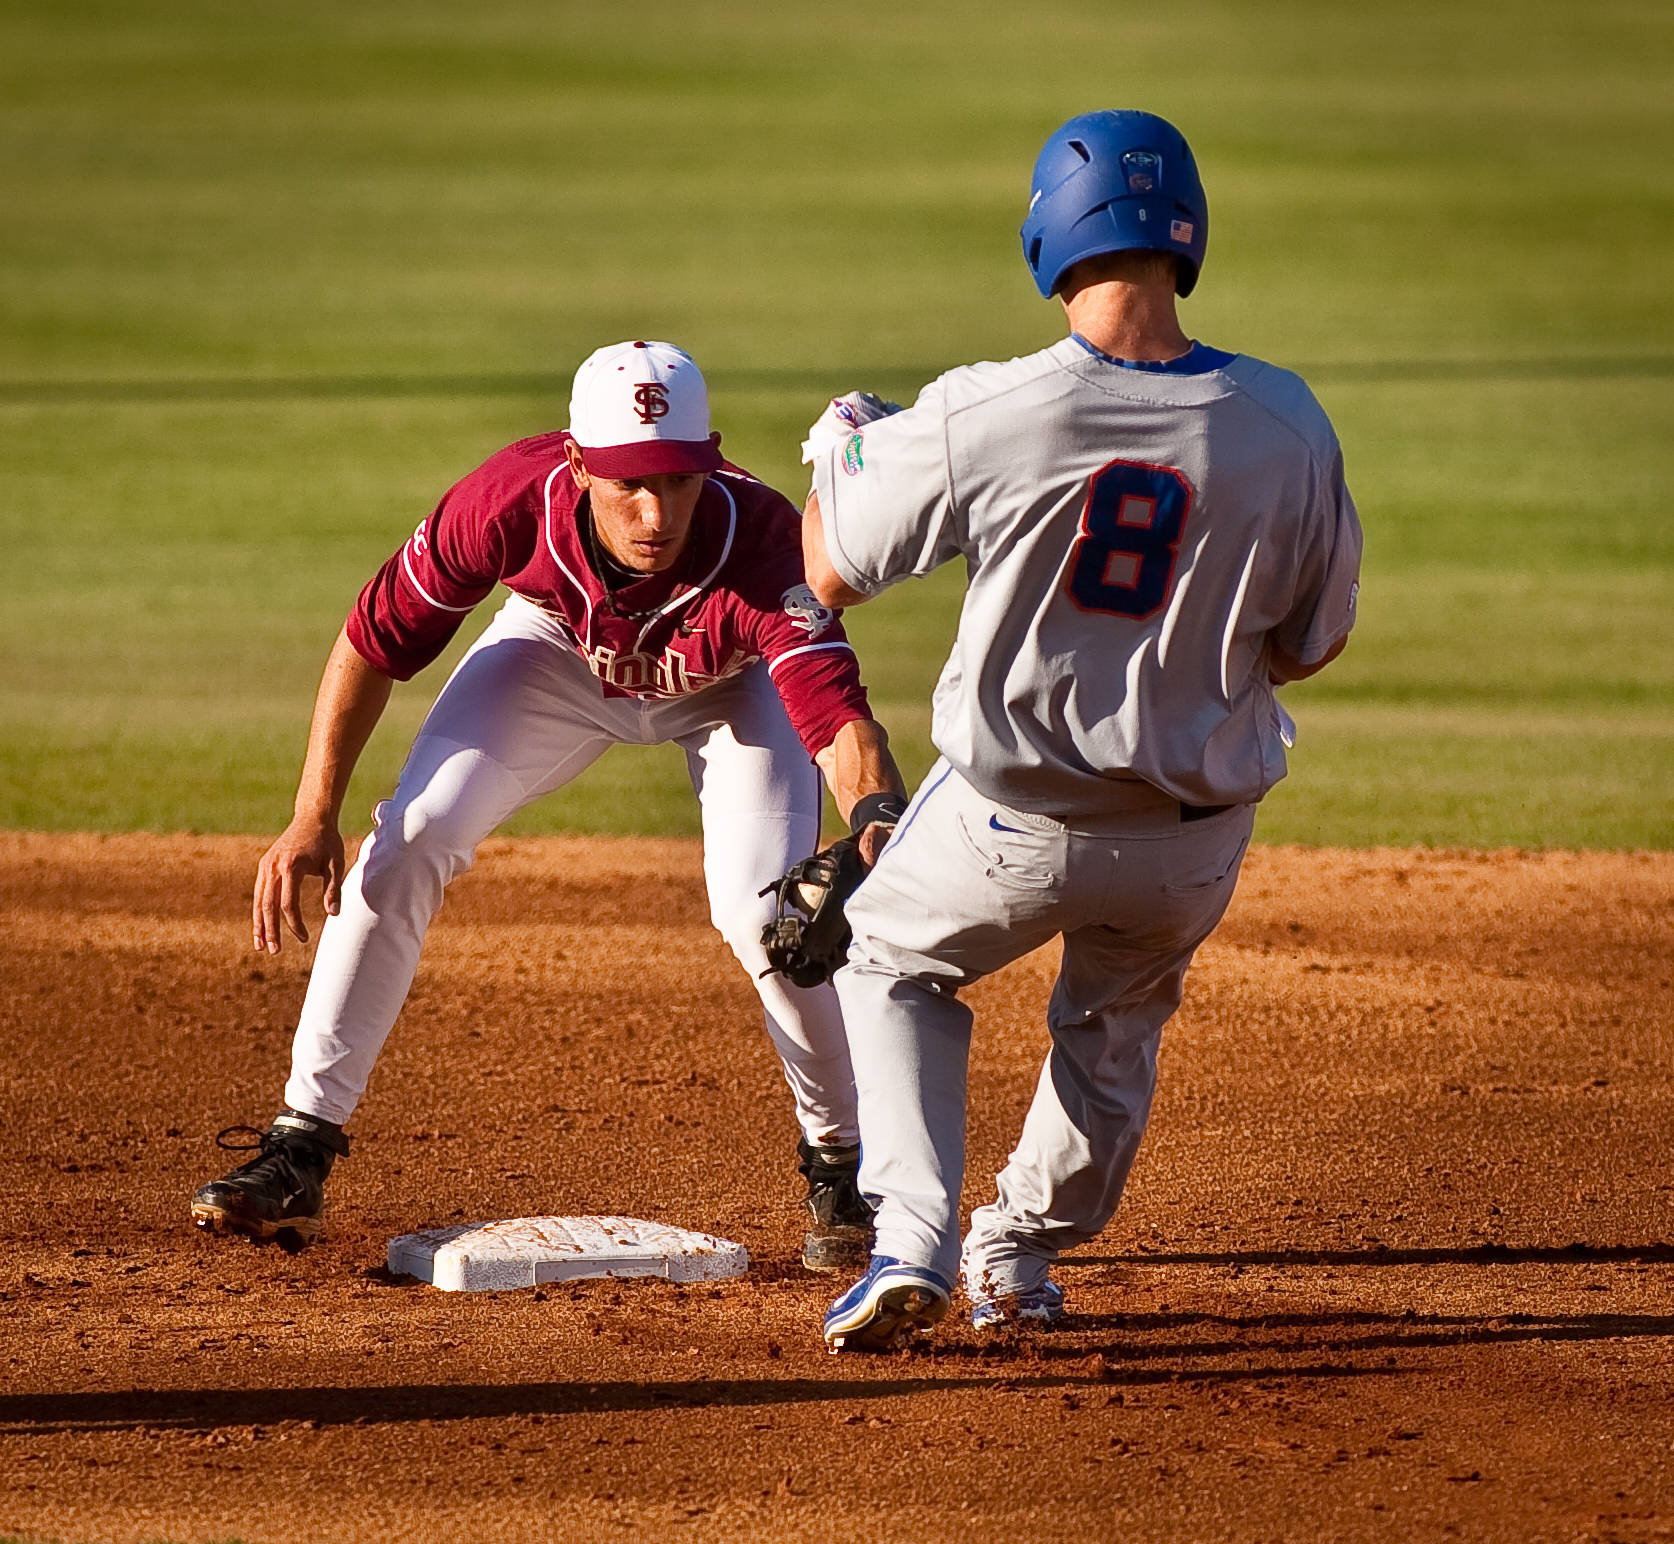 Justin Gonzalez (10) tags out Daniel Pigott at 2nd base